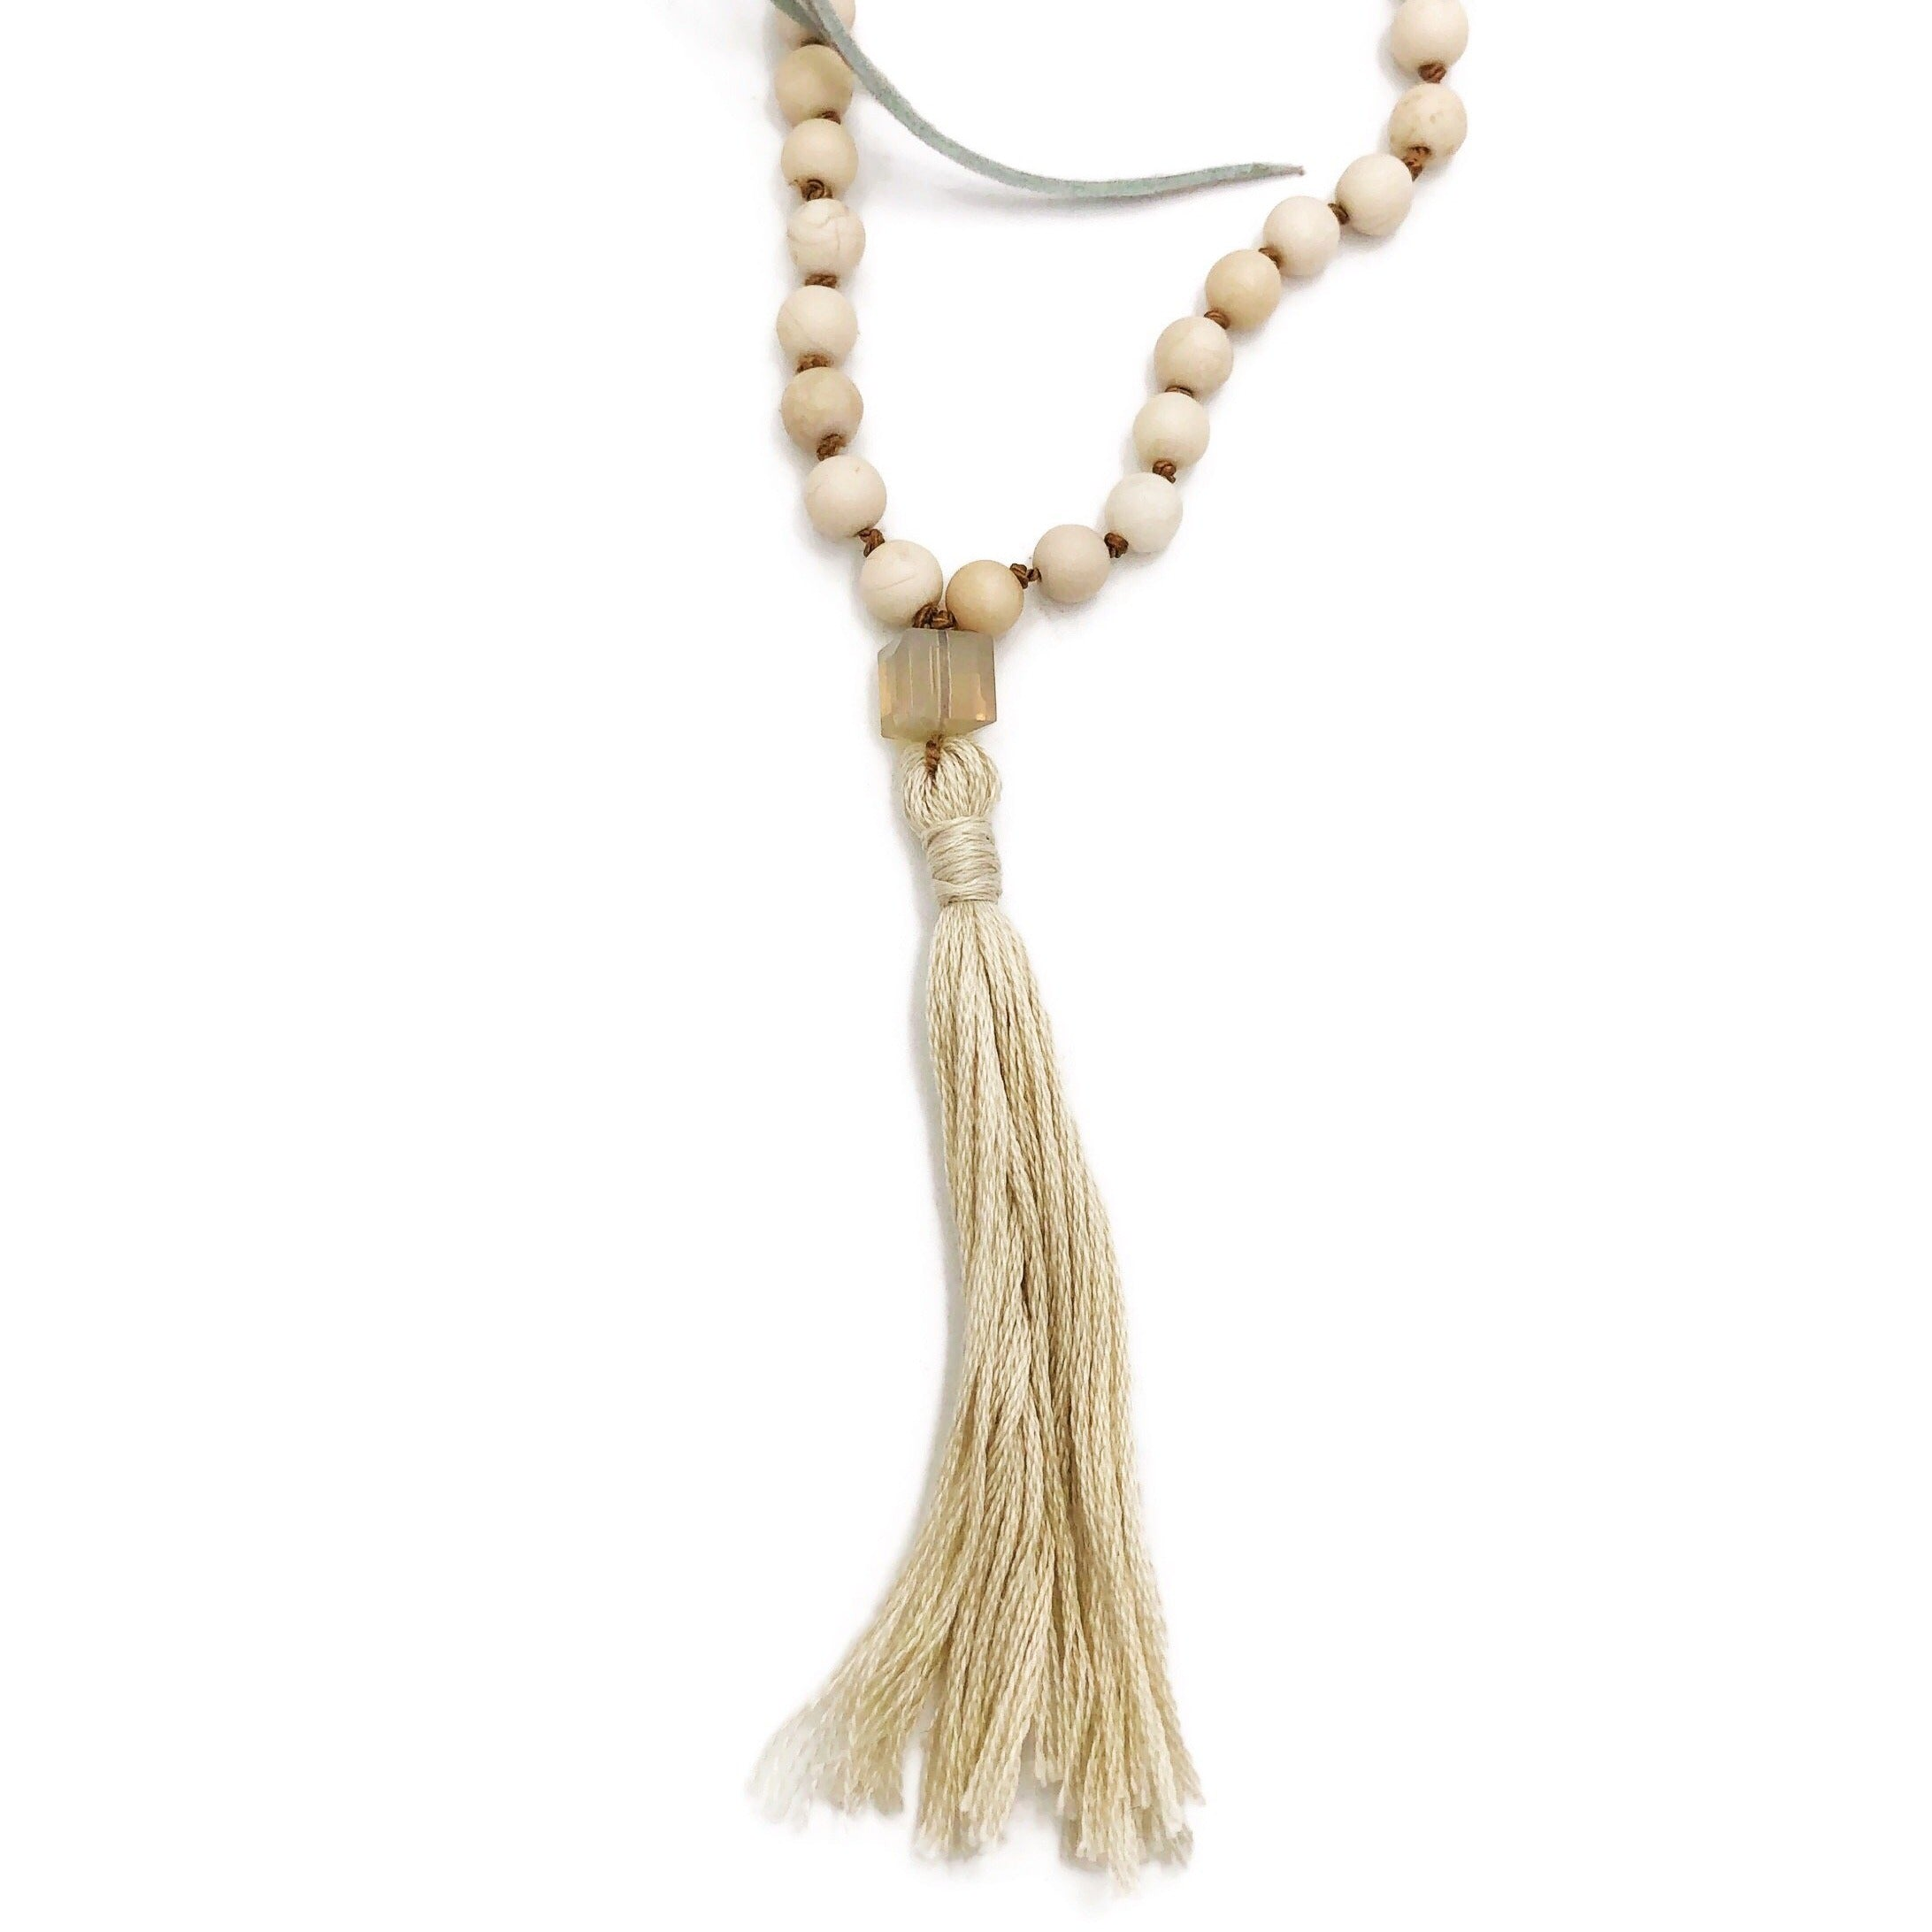 Mala Necklace Kit/ Virtual Make Party April 27, 2020